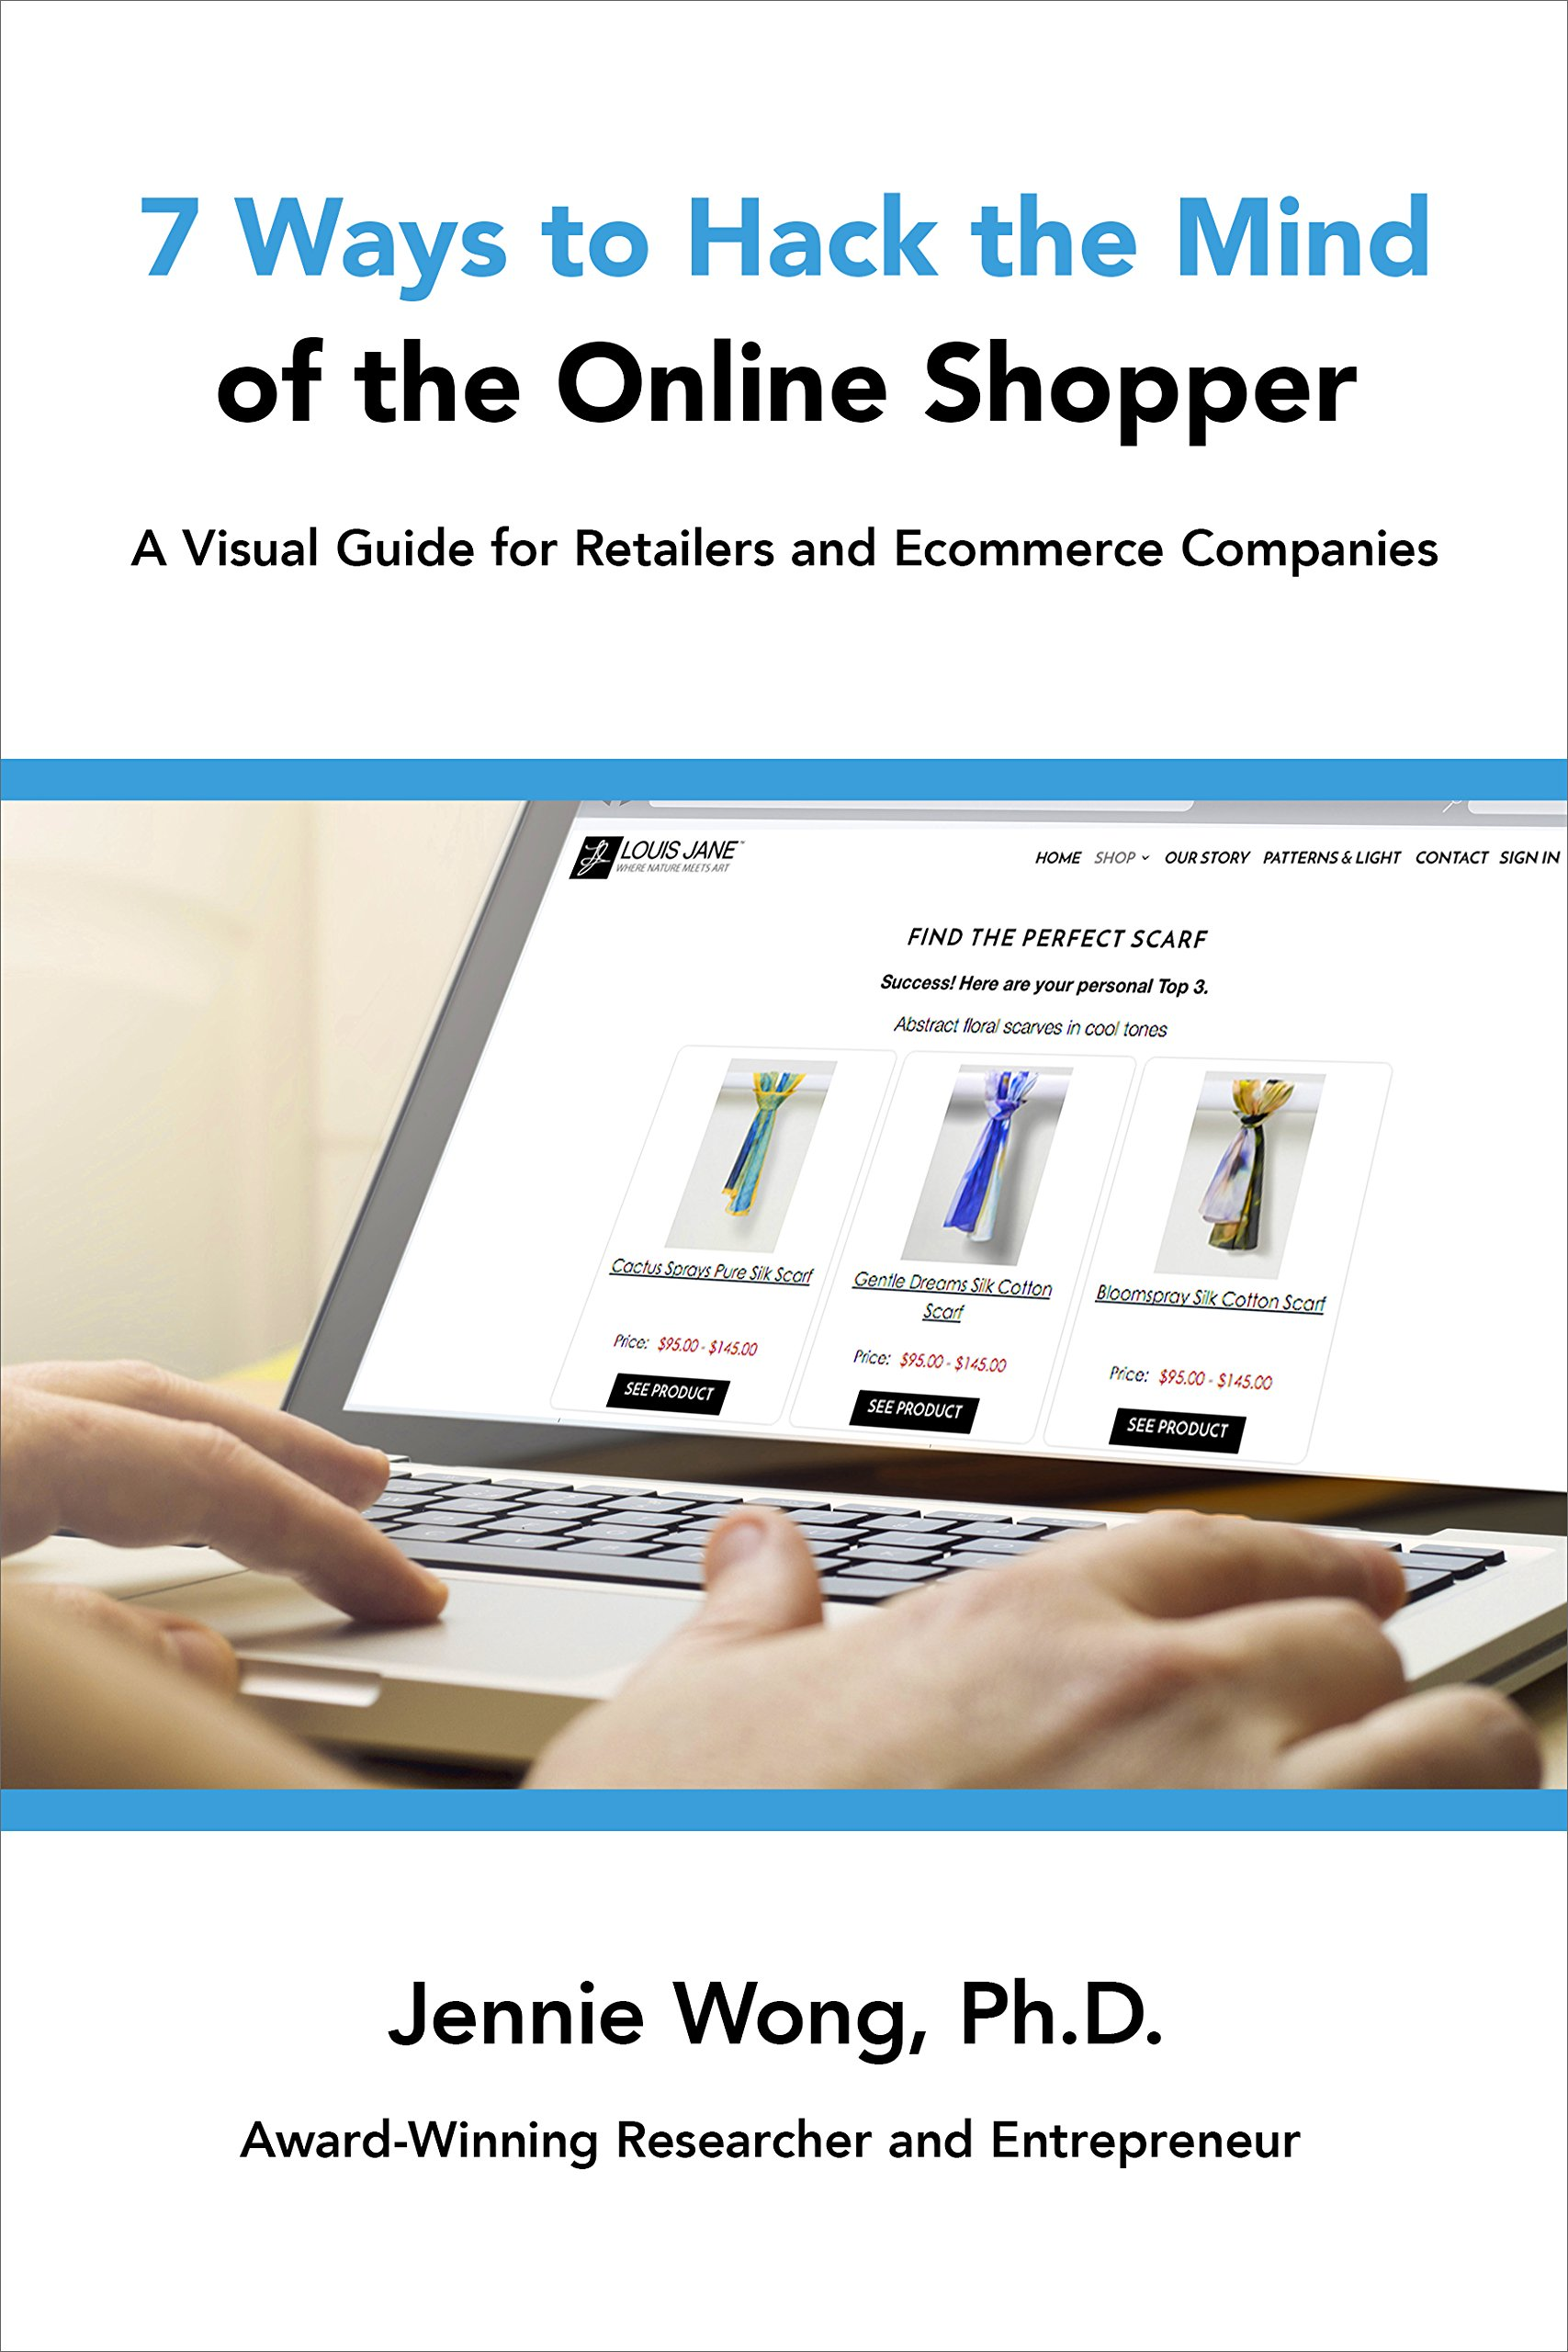 7 Ways to Hack the Mind of the Online Shopper: A Visual Guide for Retailers and Ecommerce Companies